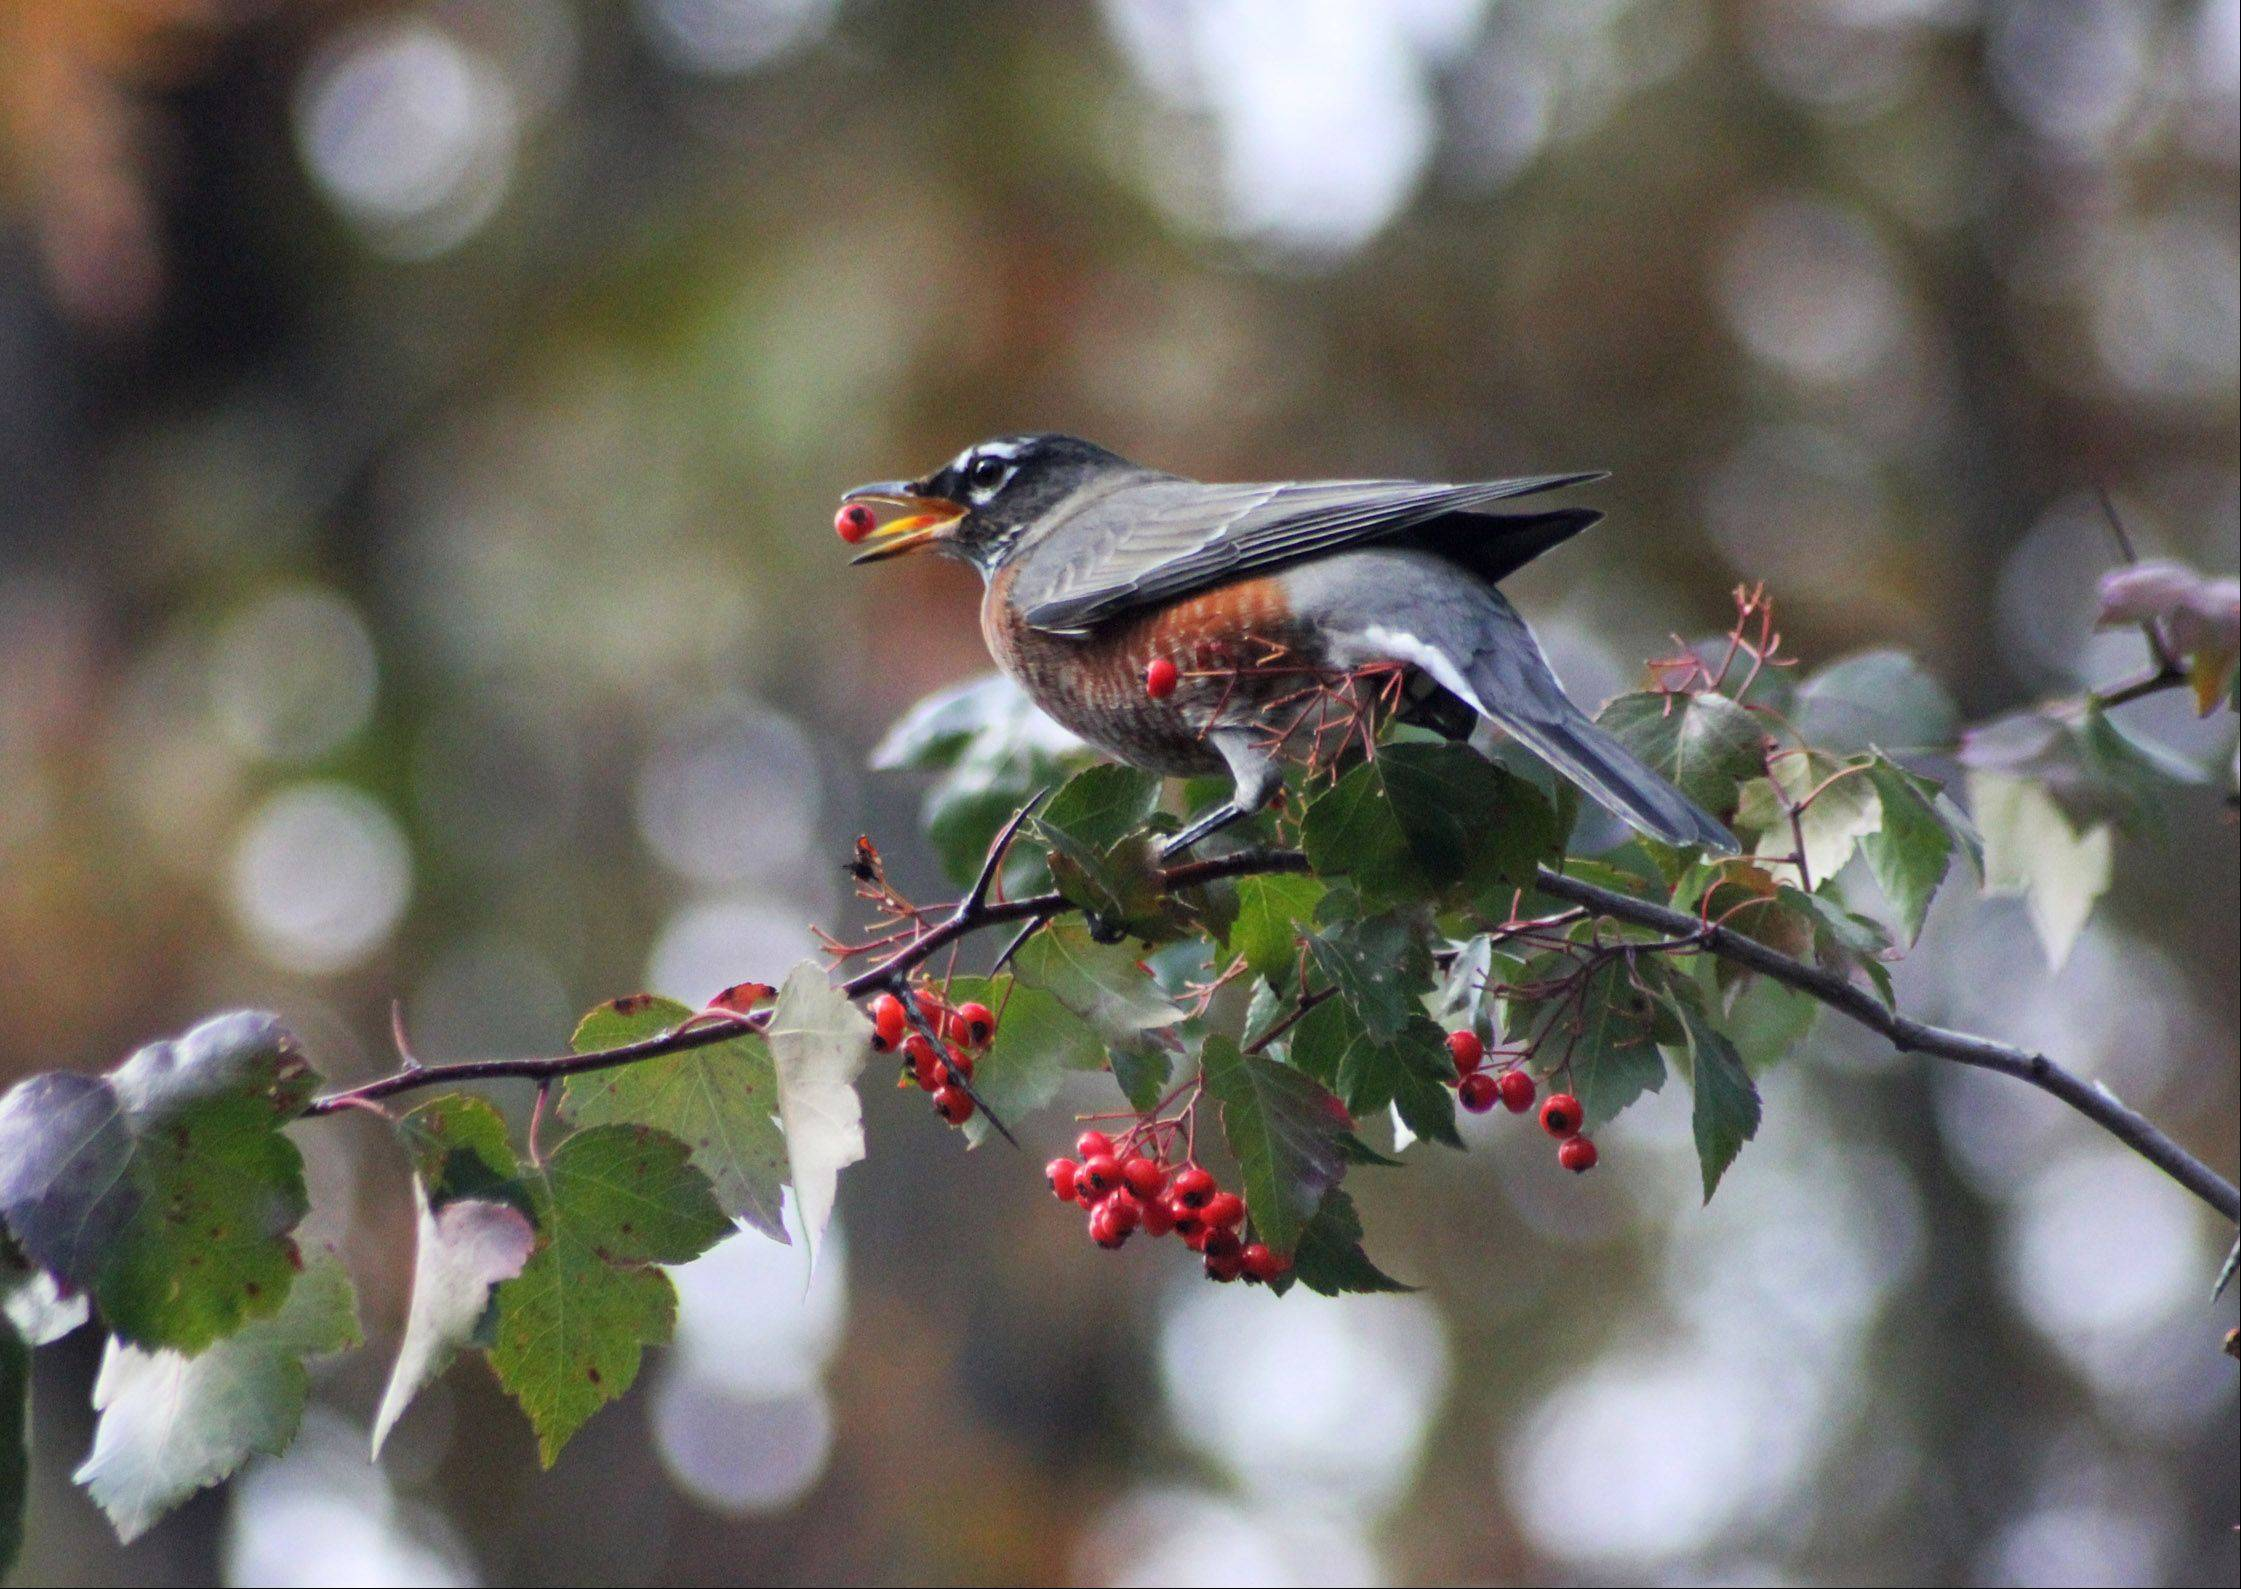 A robin collects berries from a hawthorn tree in the fall of 2012 in Fontana, Wisconsin.